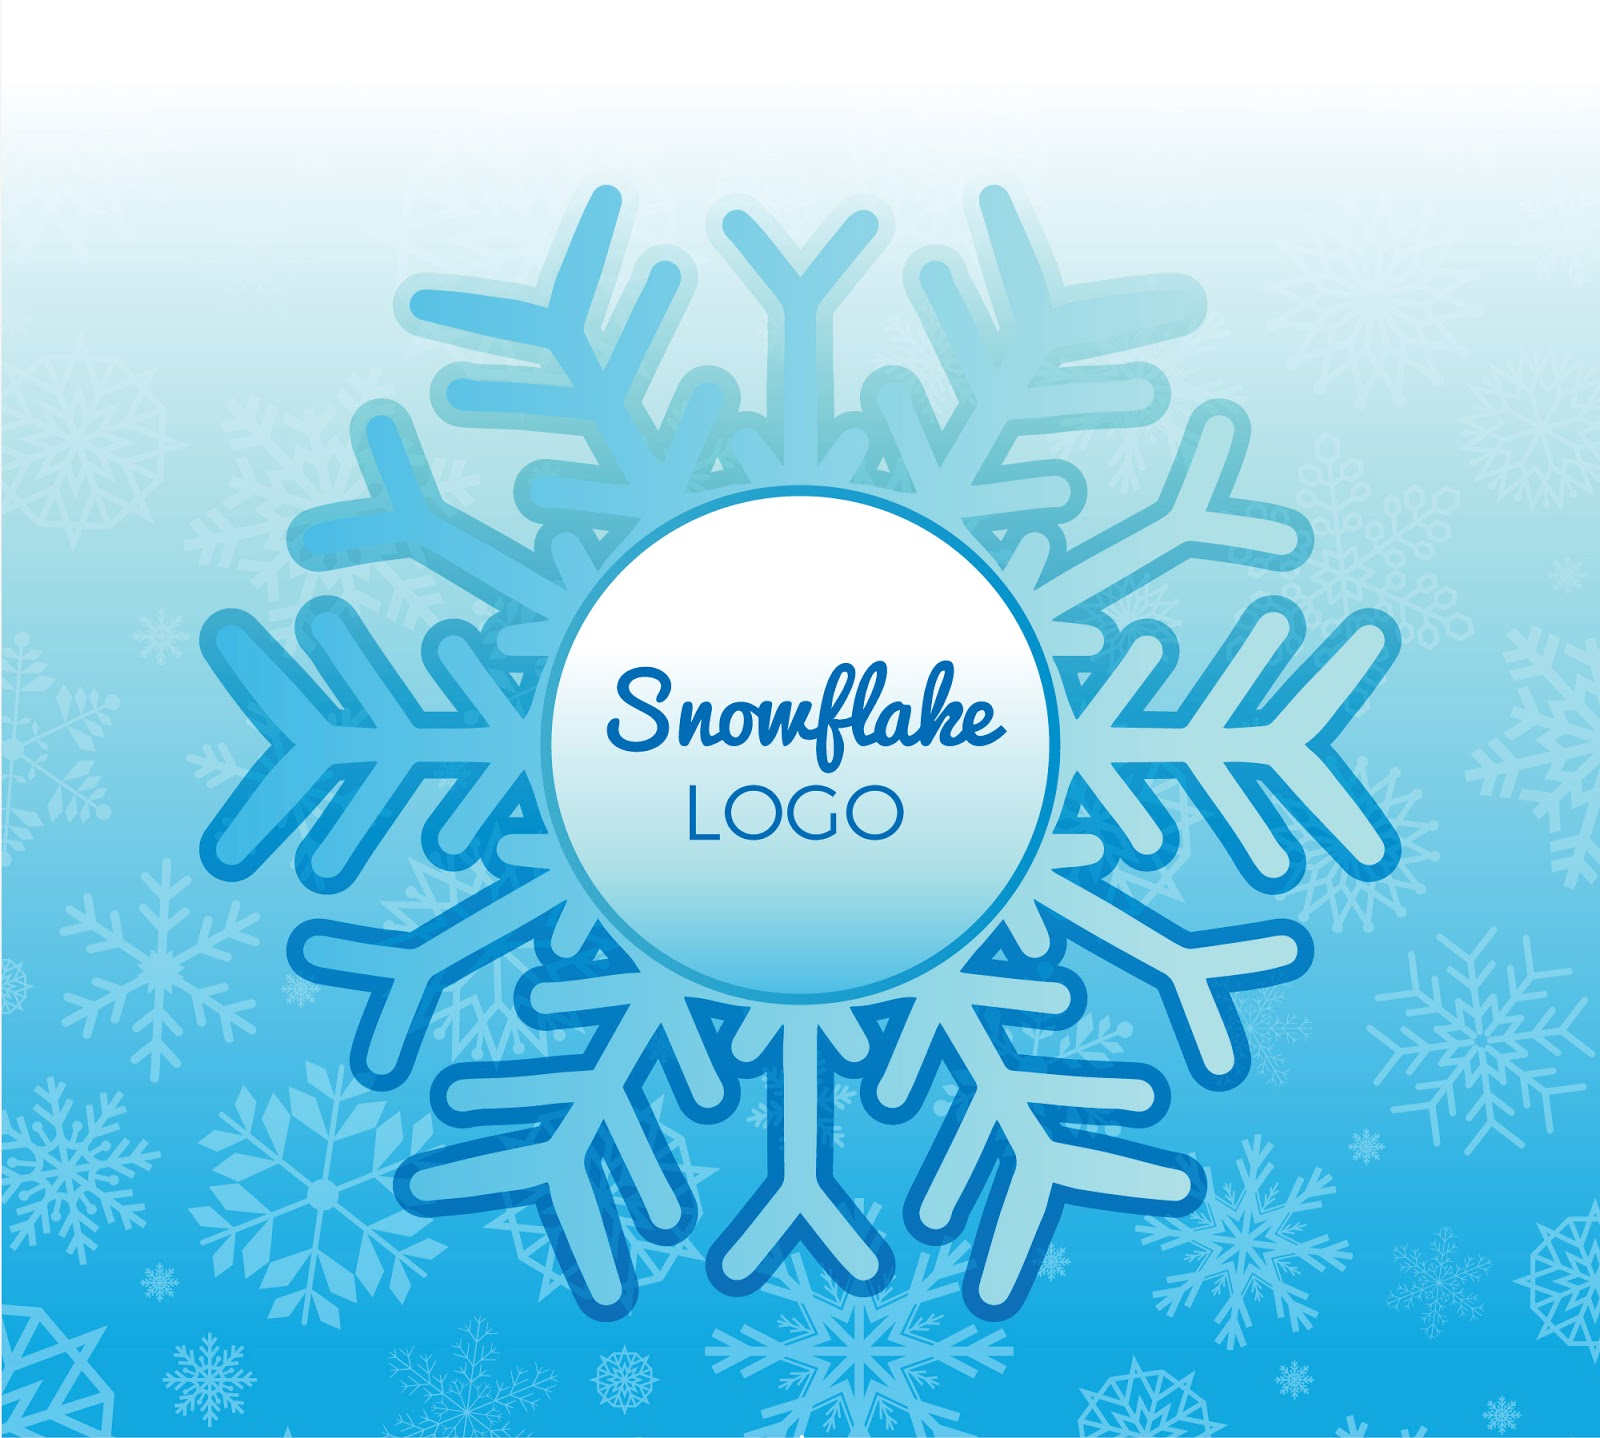 Winter Snowflake Logo Free Download Vector CDR, AI, EPS and PNG Formats